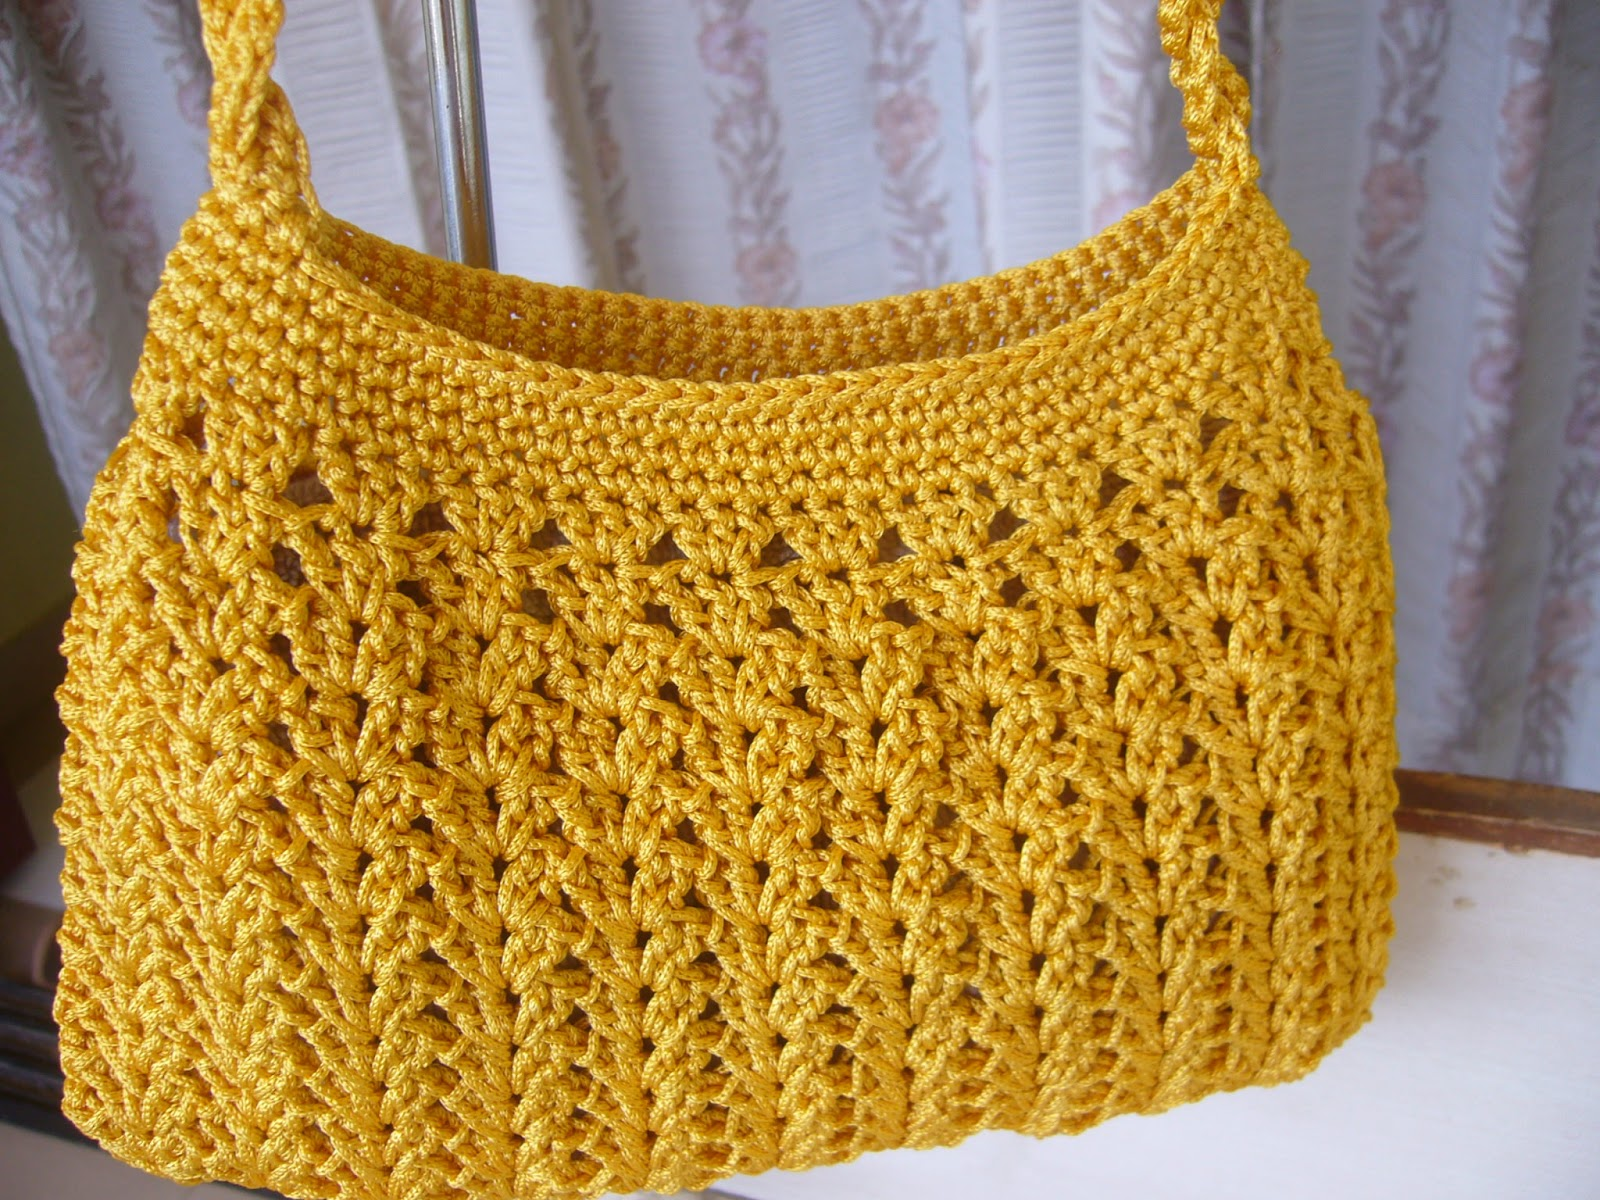 Crochetkari: Golden yellow crochet purse